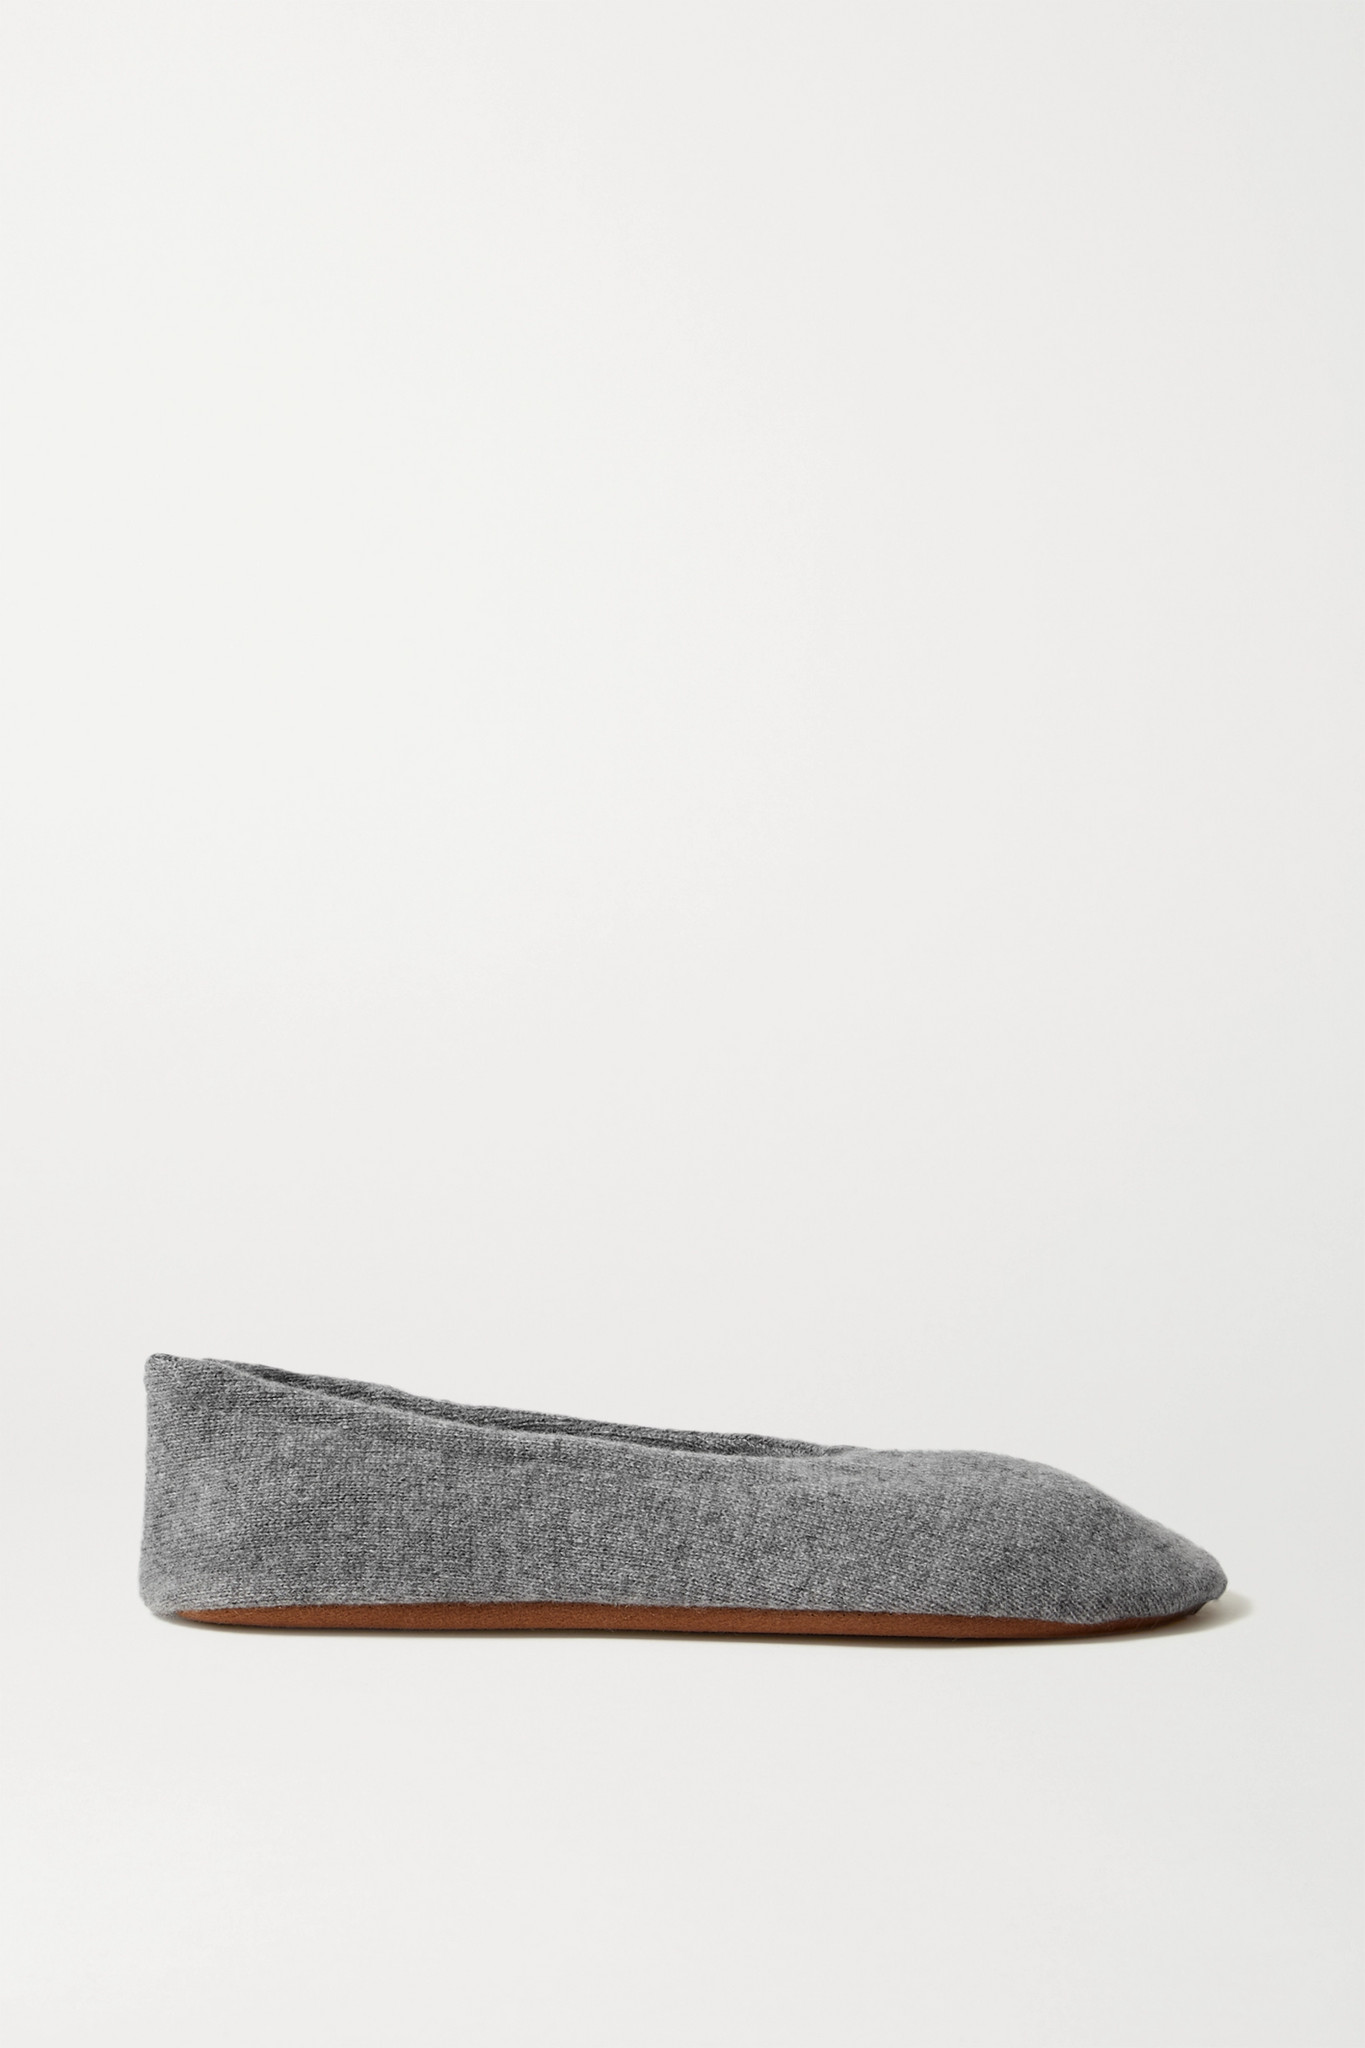 SKIN - Cashmere Ballet Flats - Gray - x small